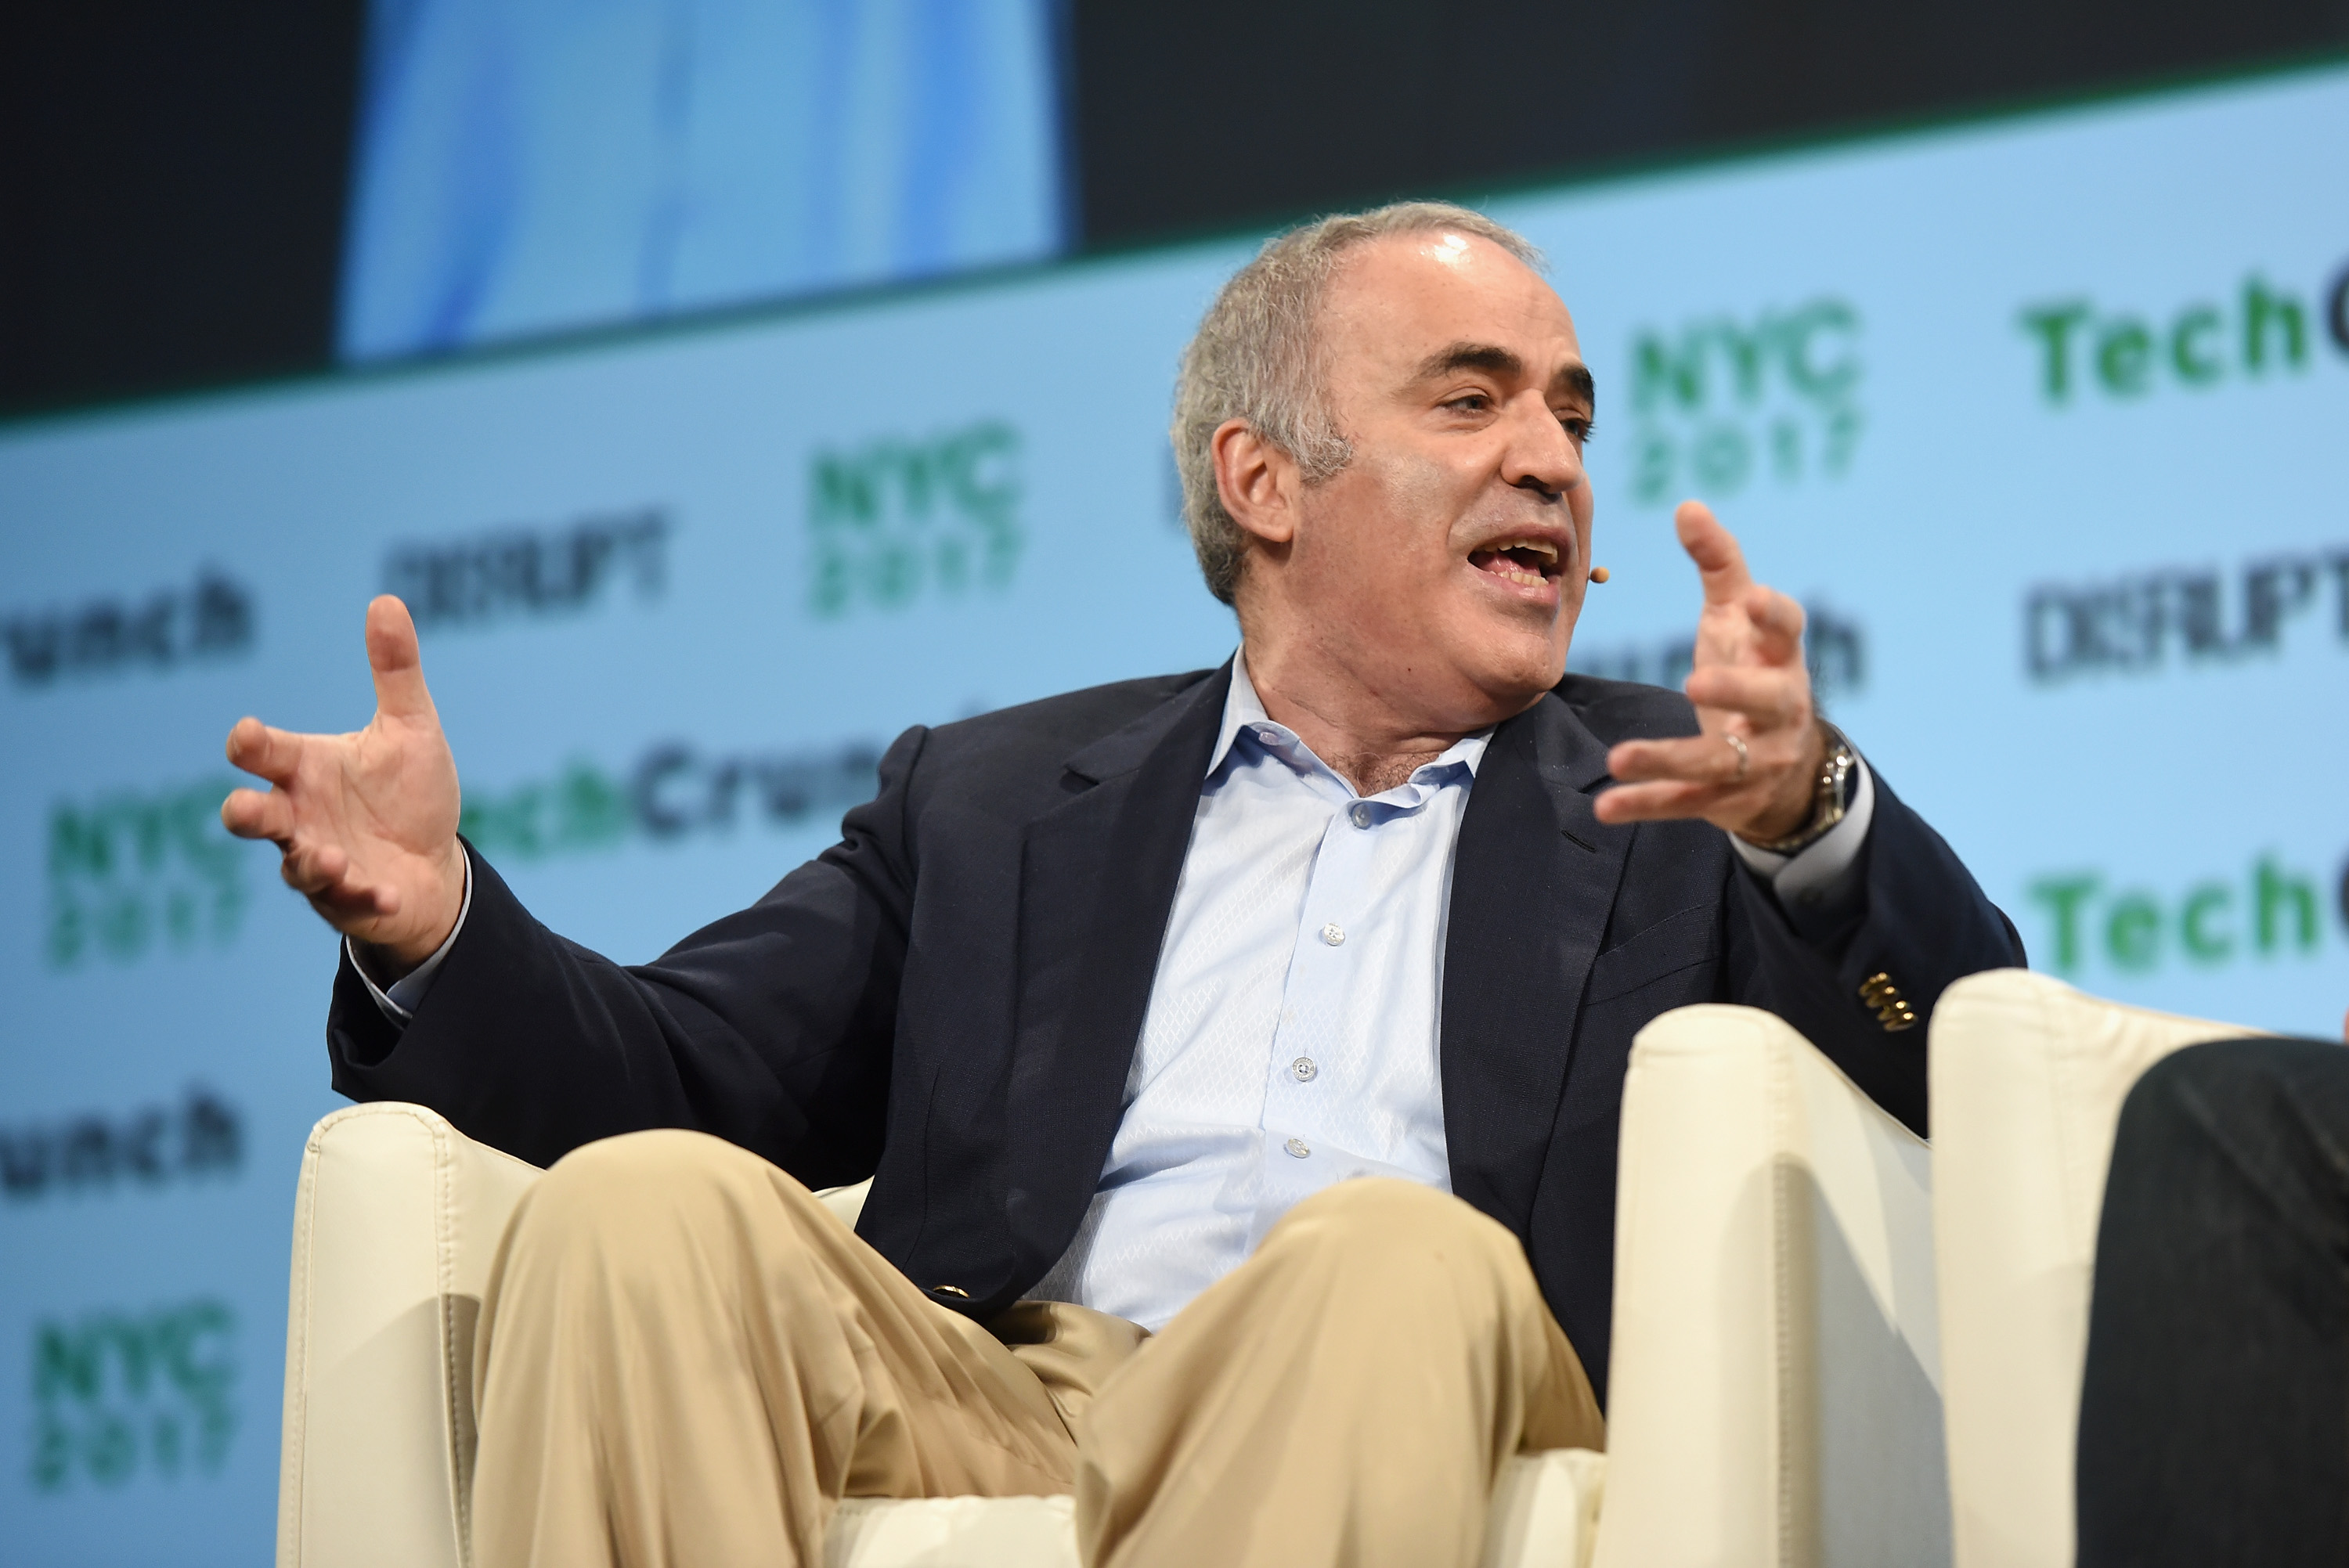 Chess Grandmaster and writer Garry Kasparov speaks onstage during TechCrunch Disrupt NY 2017 - Day 3 at Pier 36 on May 17, 2017 in New York City.